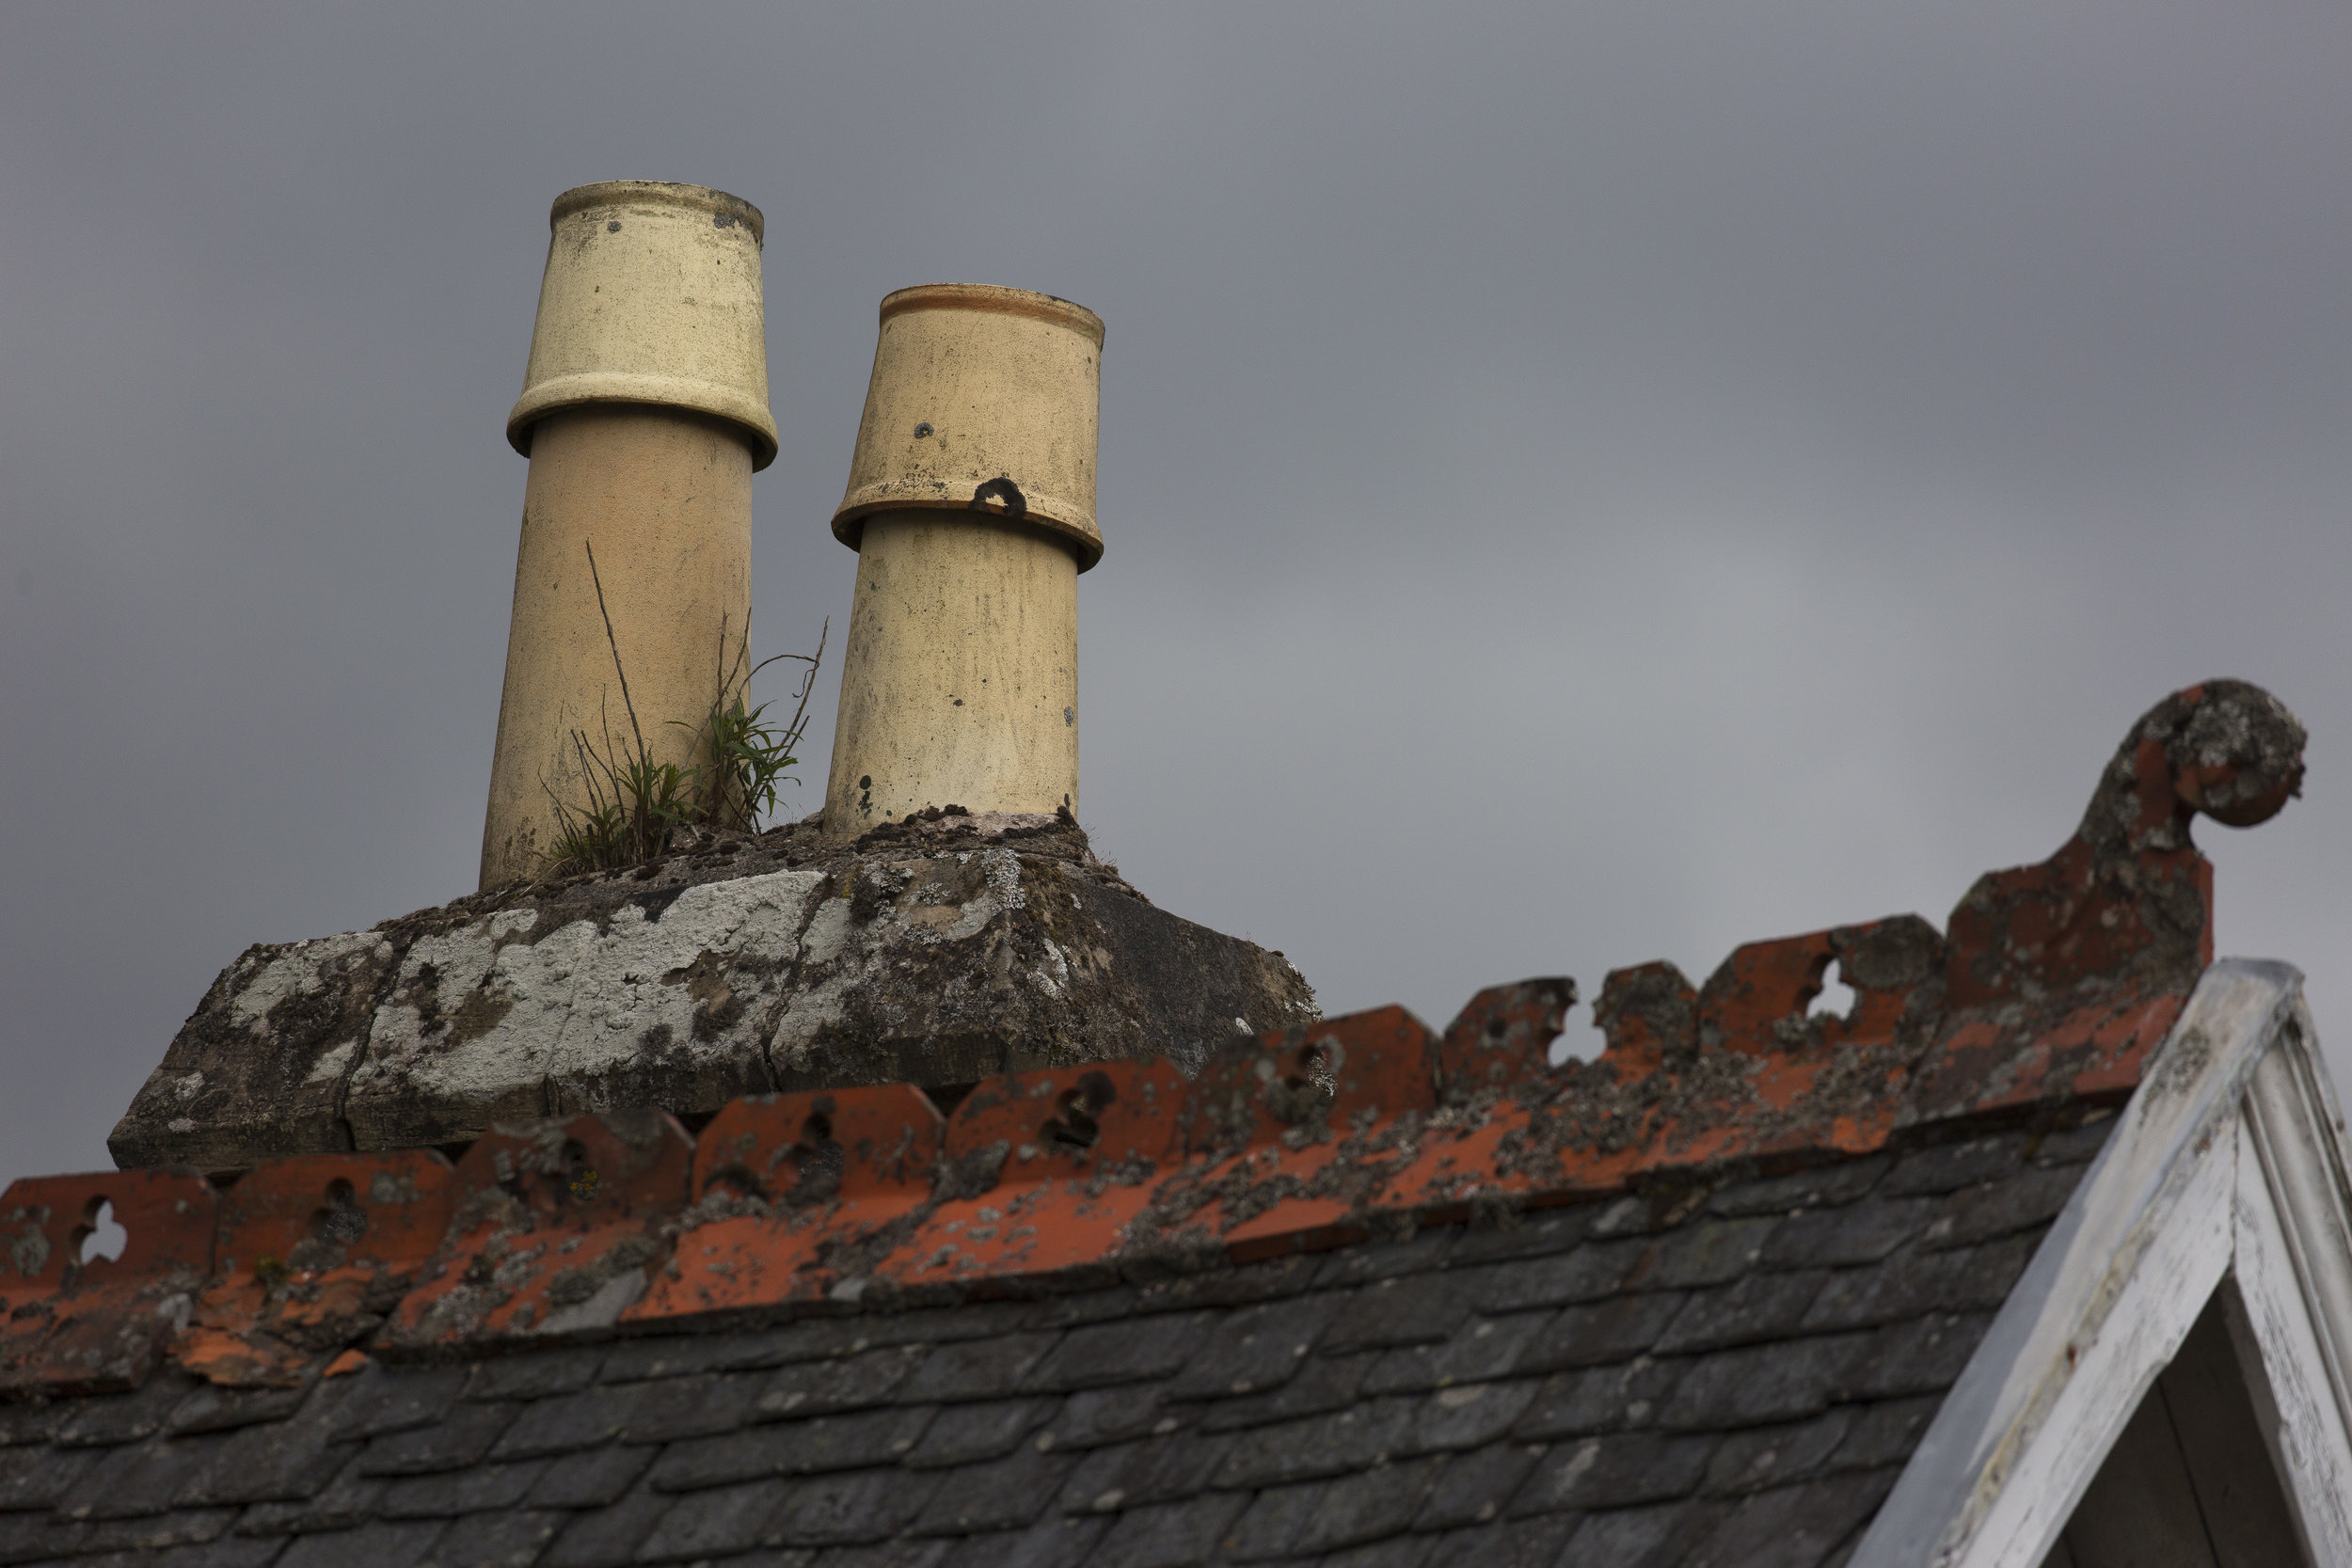 I have a thing for European chimney pots.